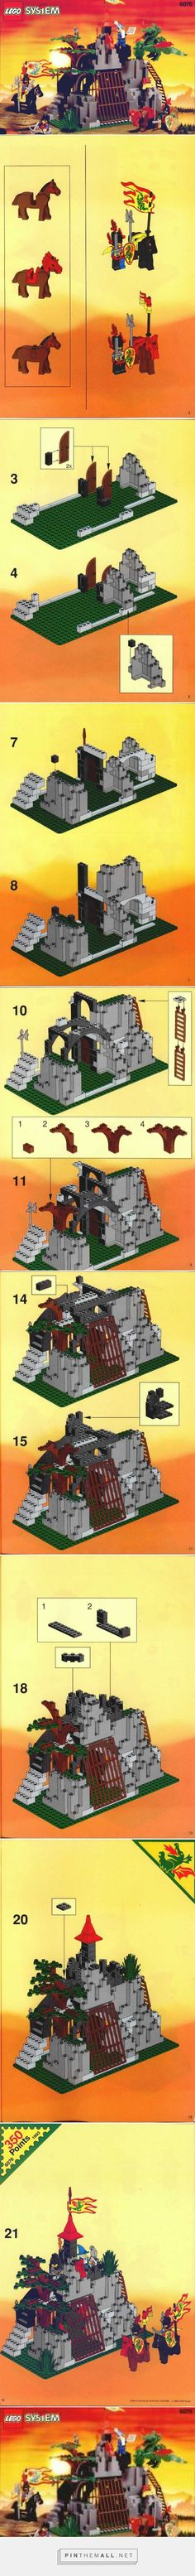 LEGO Dark Dragon's Den Instructions 6076, Castle - created via https://pinthemall.net